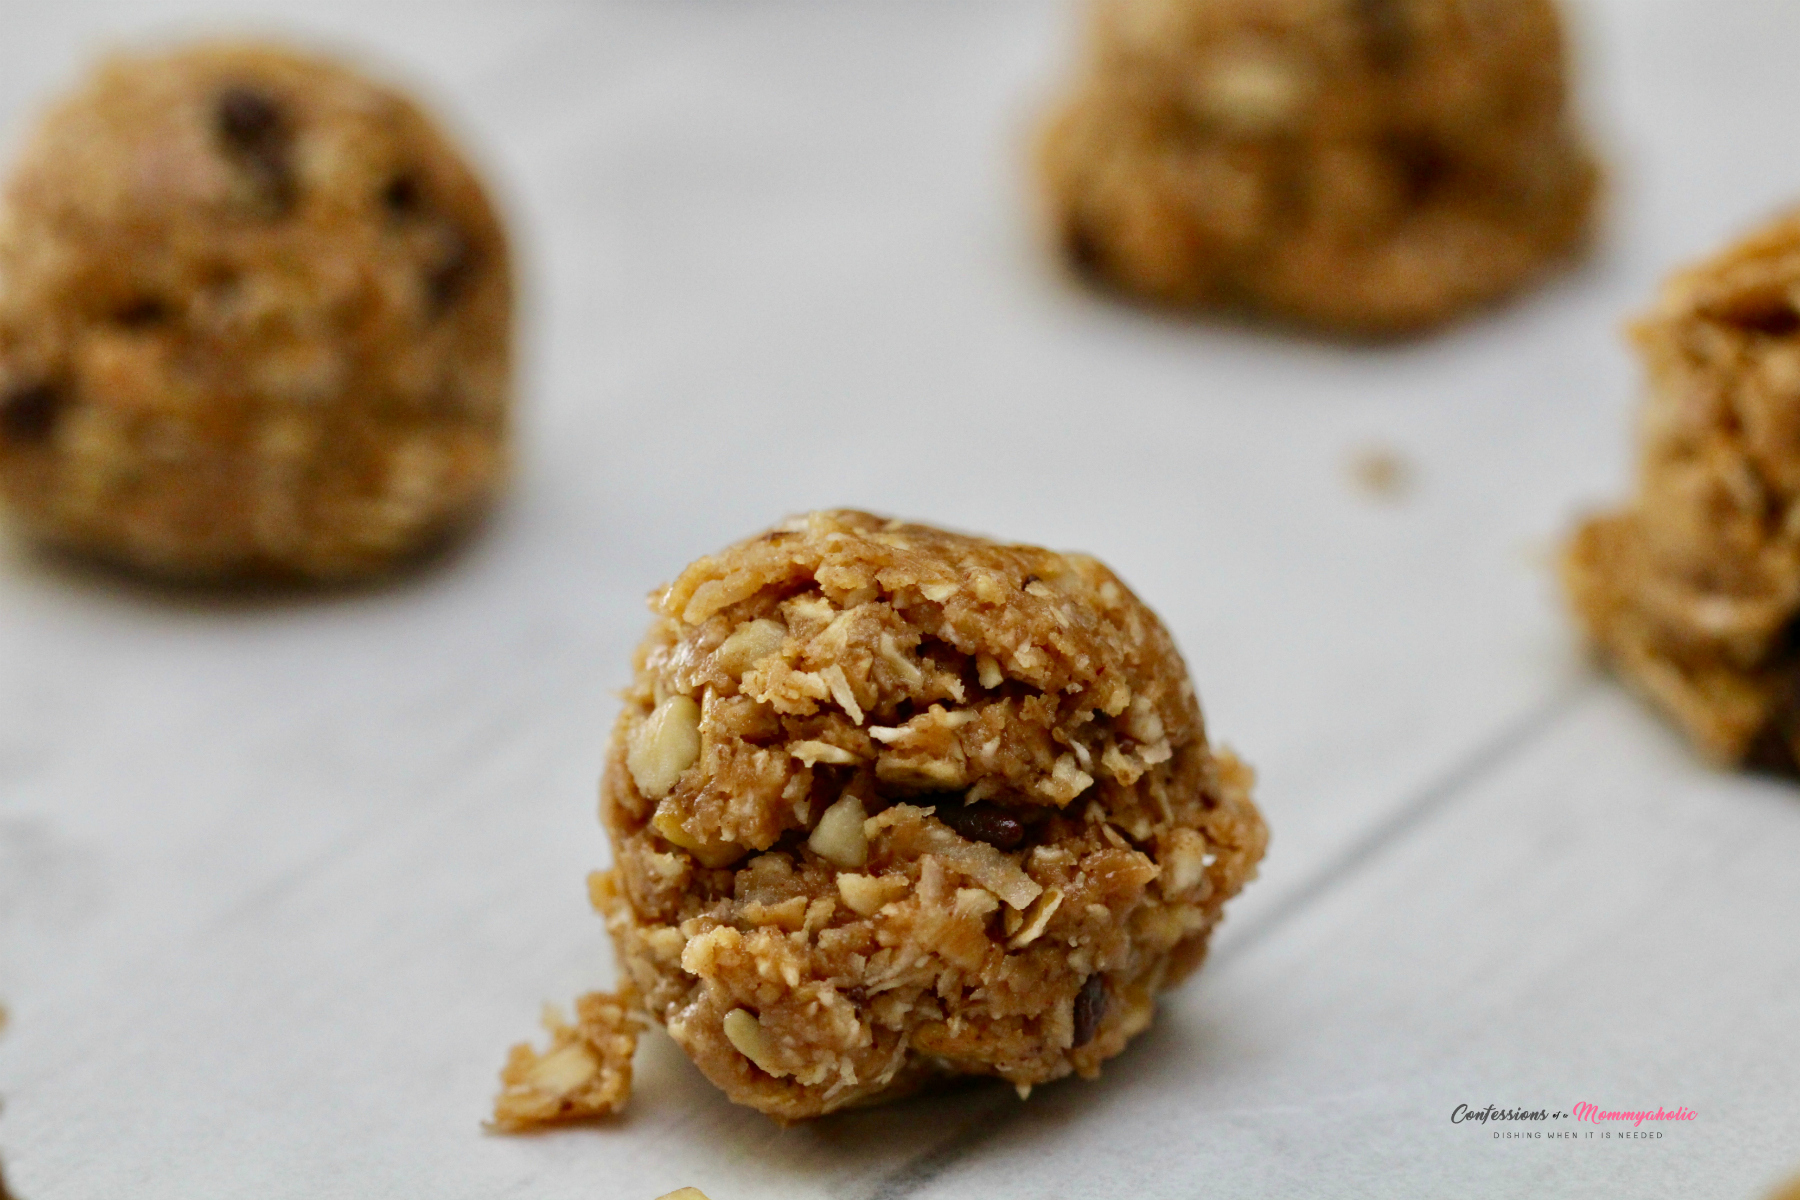 Closeup of Chocolate Oatmeal Ball